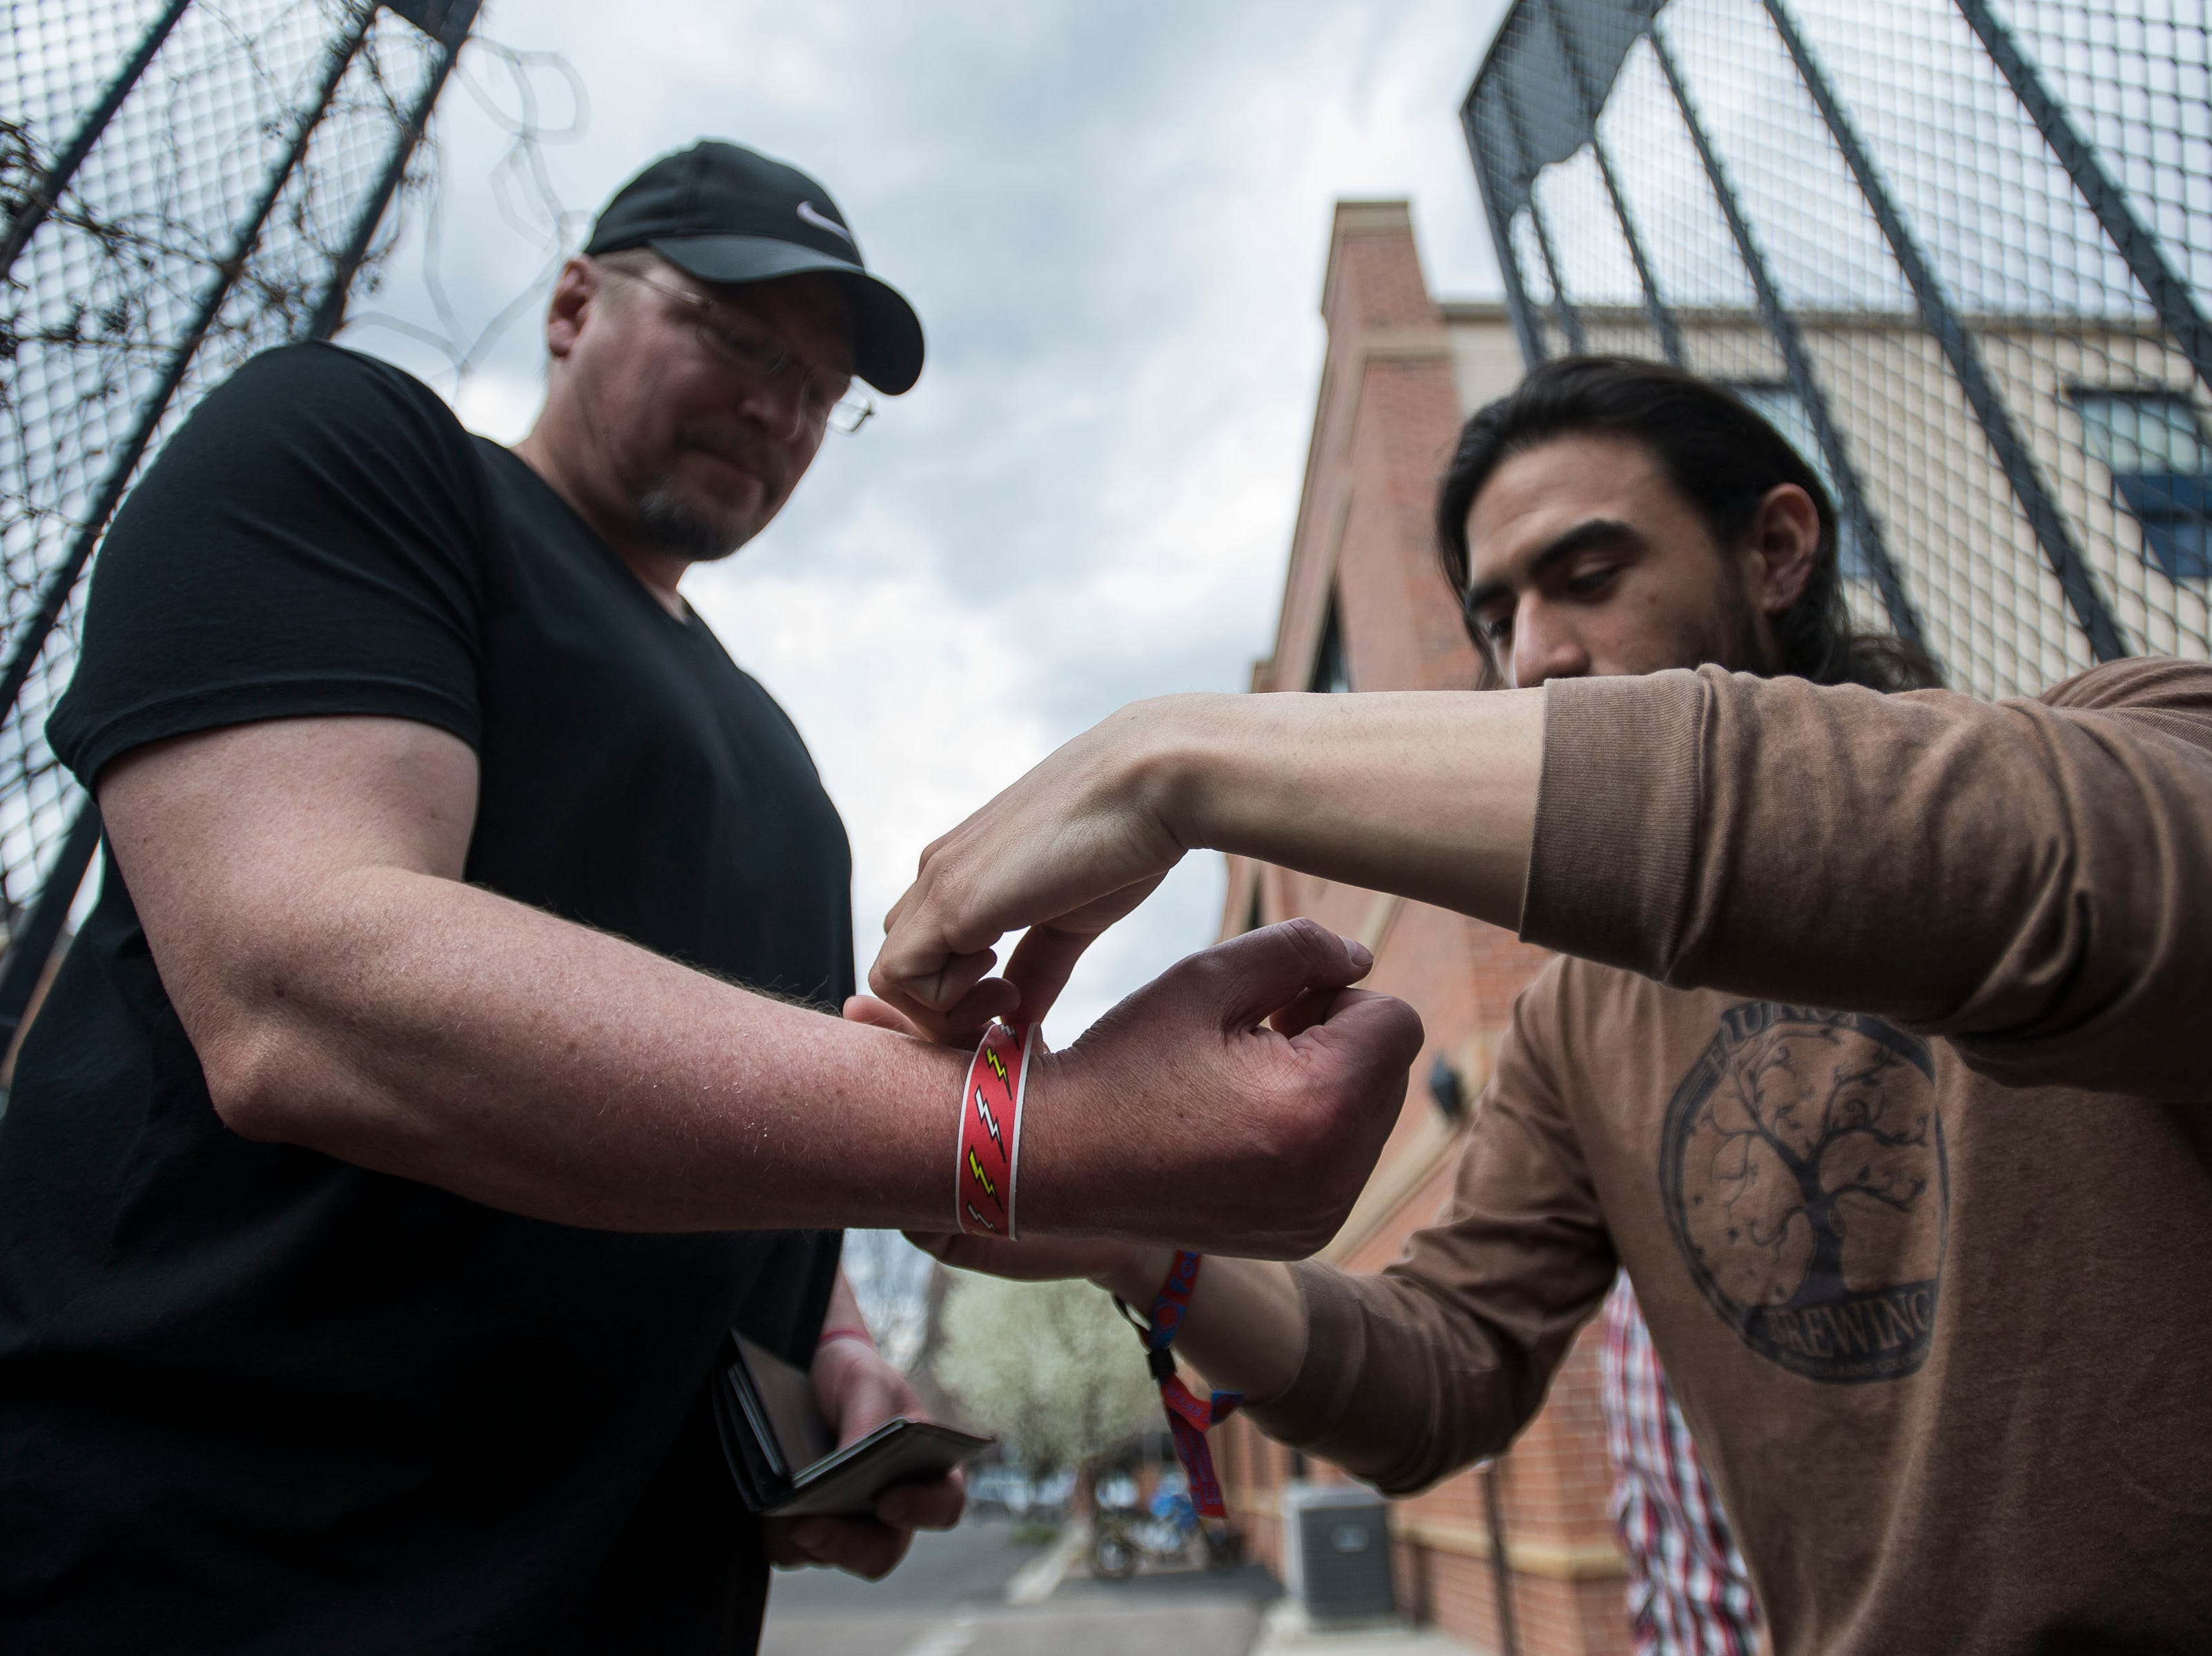 Mark Weber has a wristband stripped on by Equinox Brewing bartender Dennis Palacio before watching Michael Kirkpartick perform on the back patio during the FoCoMX XI music festival on Friday, April 26, 2019, in Fort Collins, Colo.